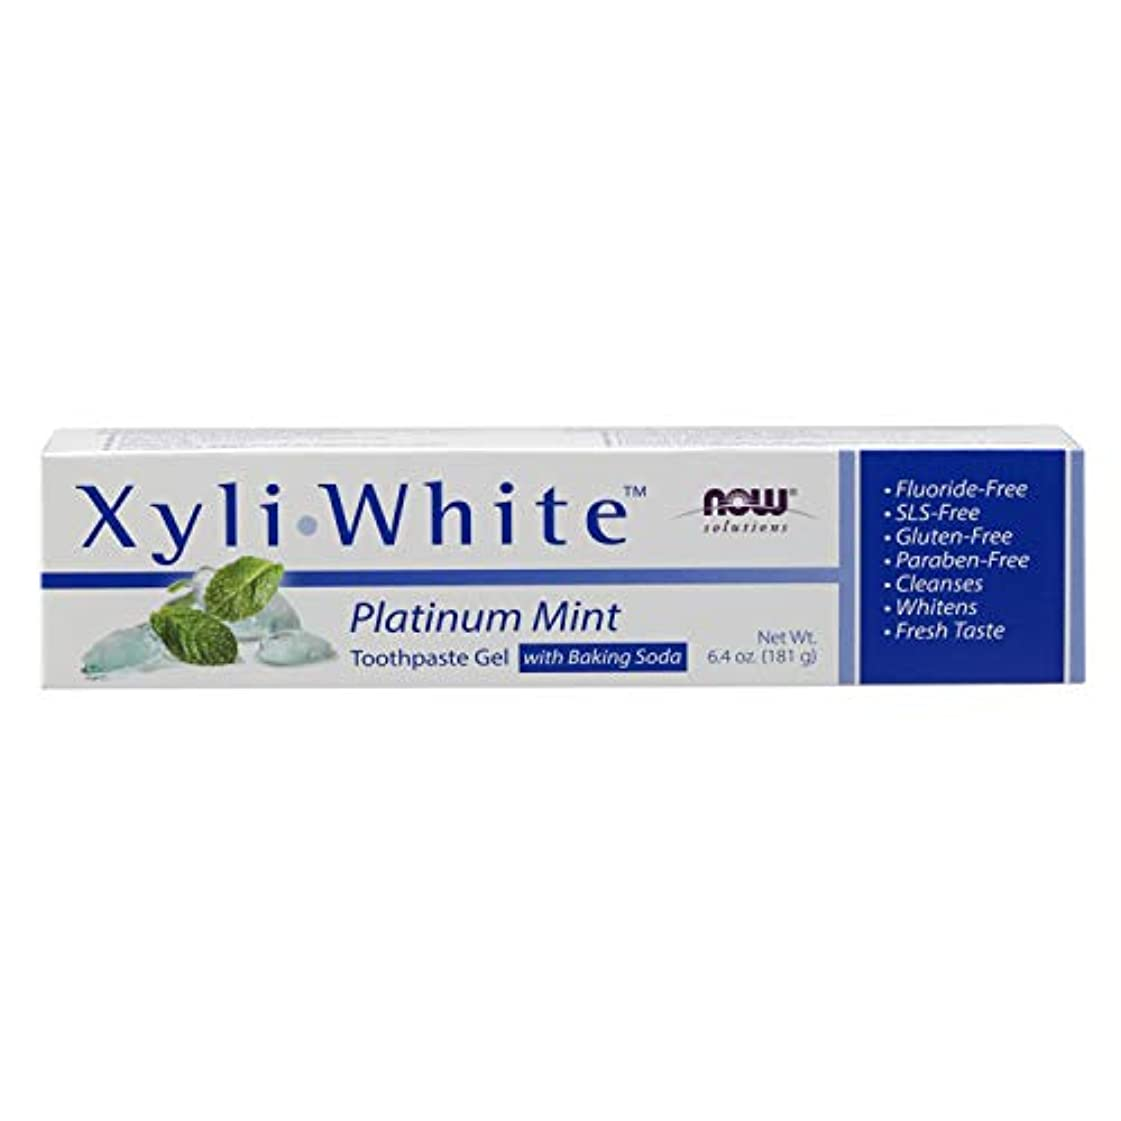 ライオン提供スペース海外直送品 Now Foods Xyliwhite Platinum Mint with Baking Soda Toothpaste, 6.4 Oz